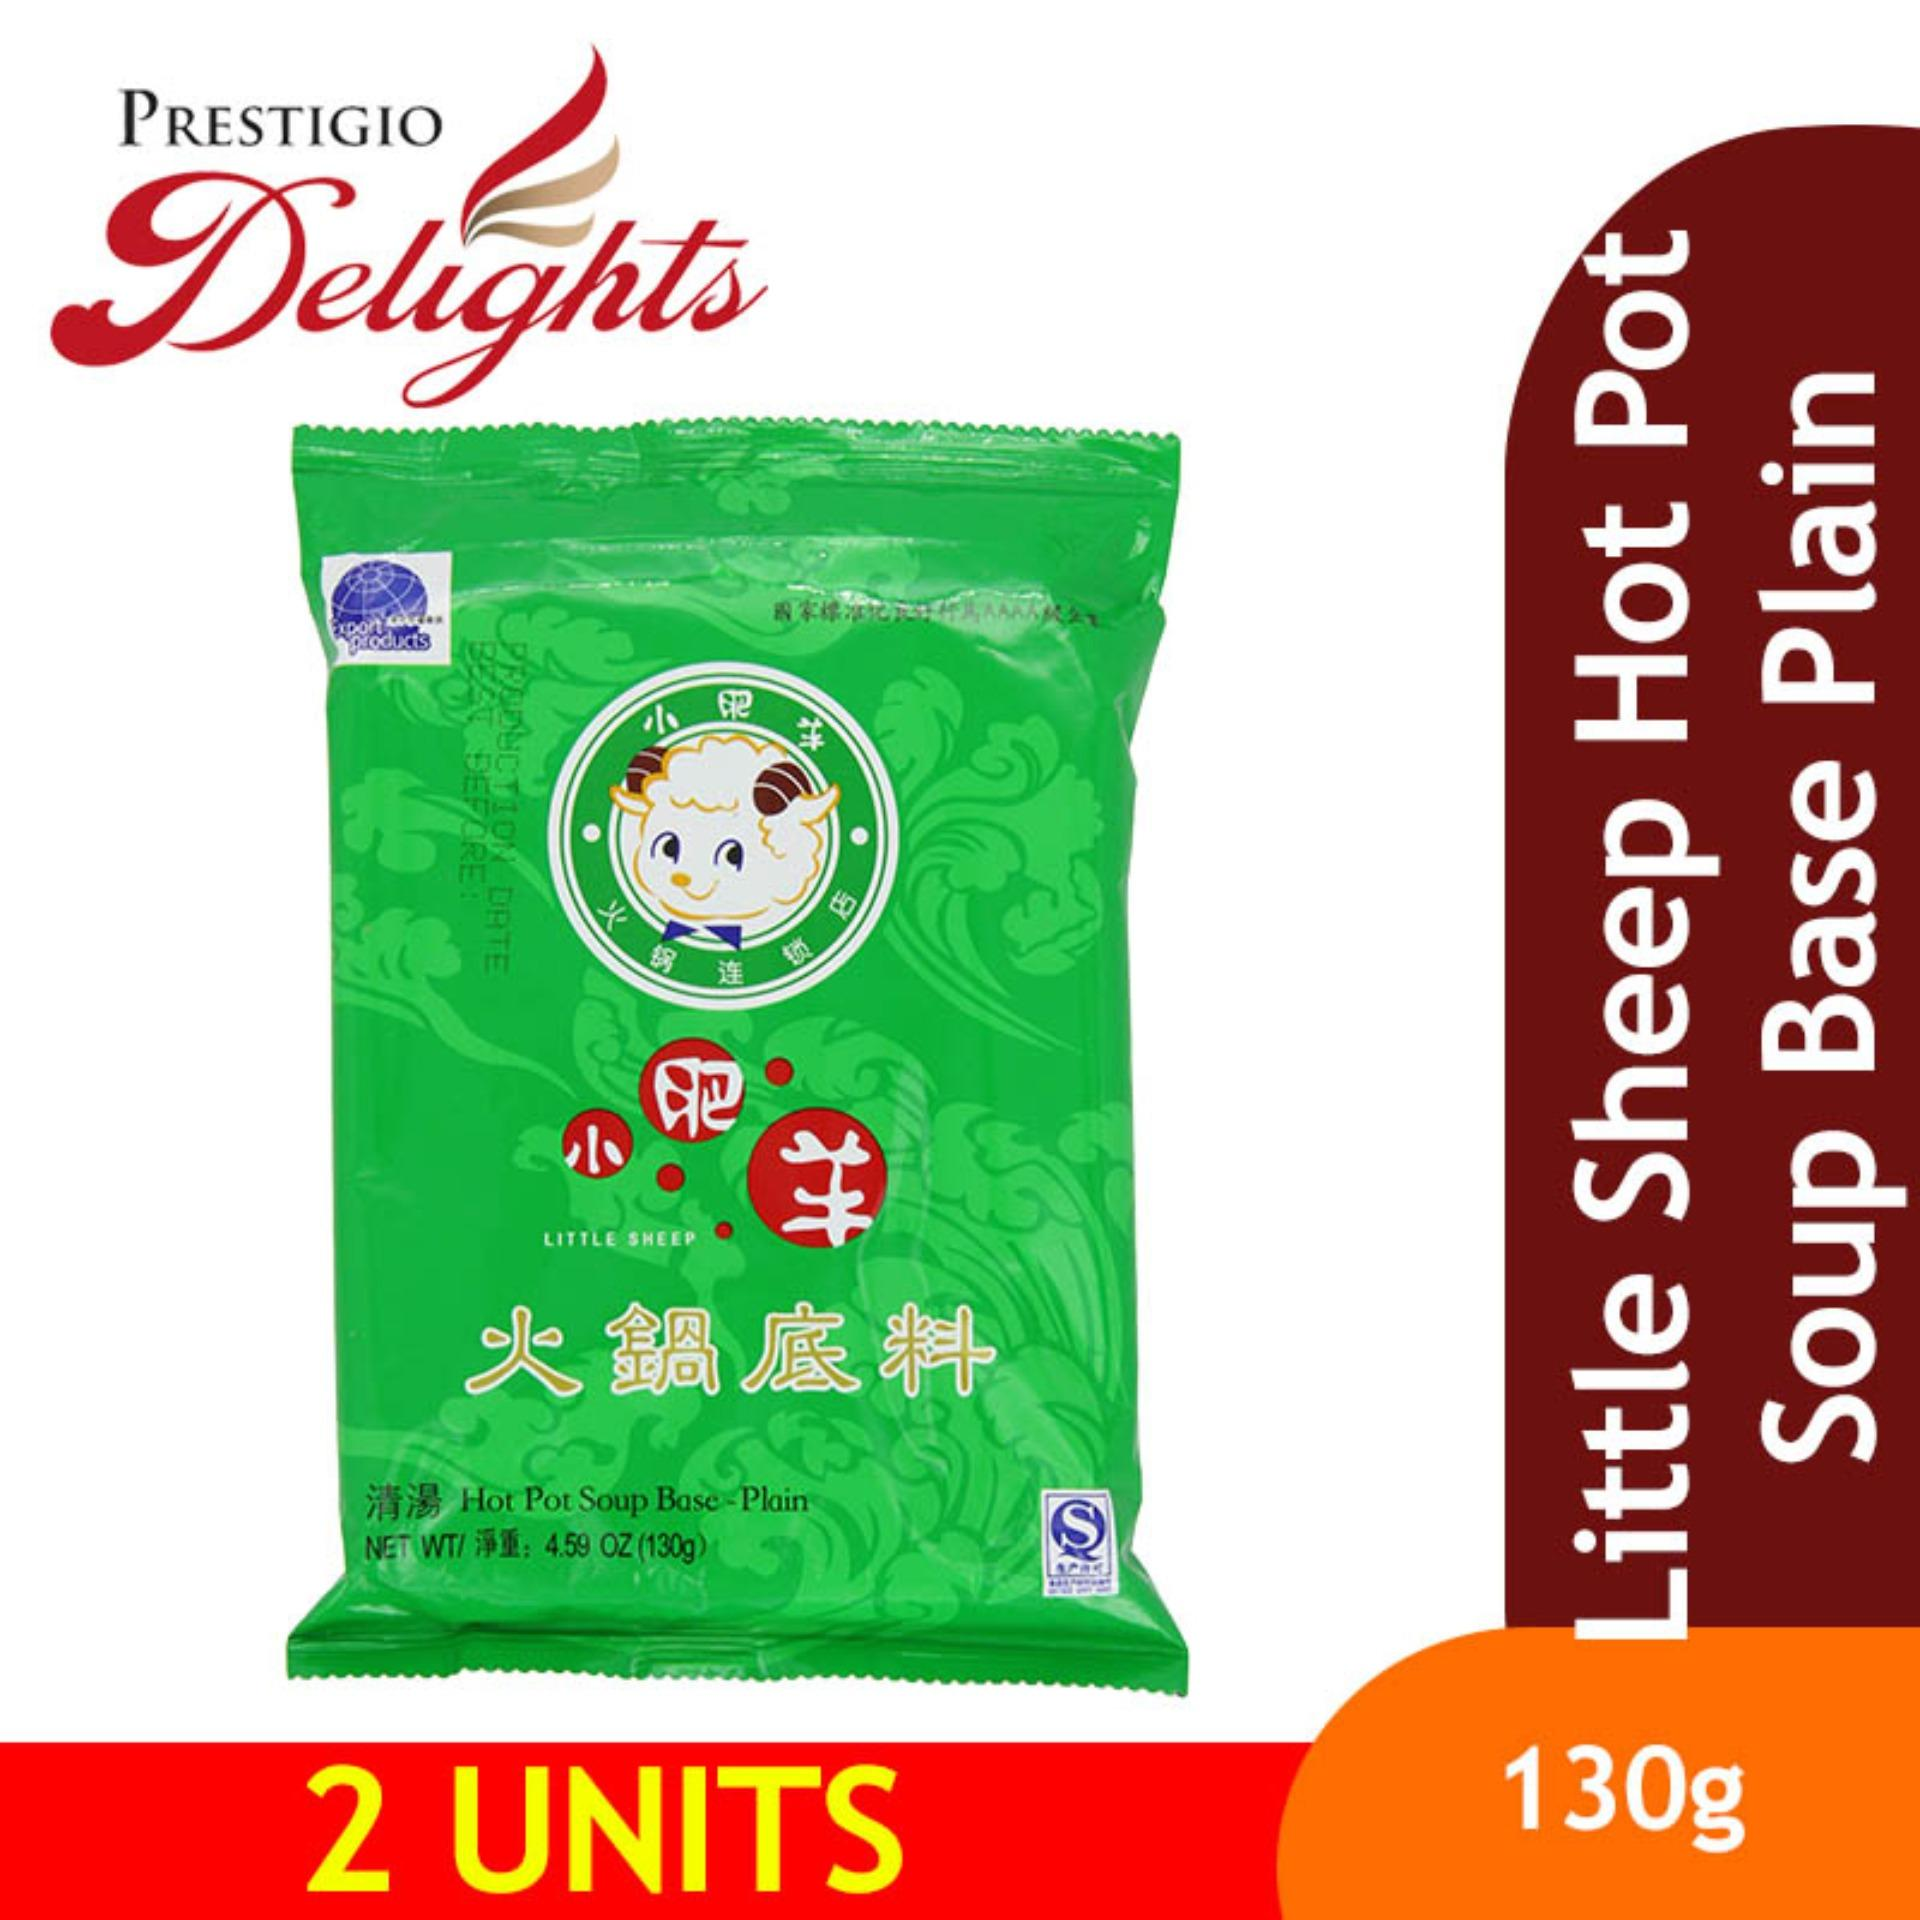 Little Sheep Hot Pot Soup Base Plain 130g Bundle Of 2 By Prestigio Delights.